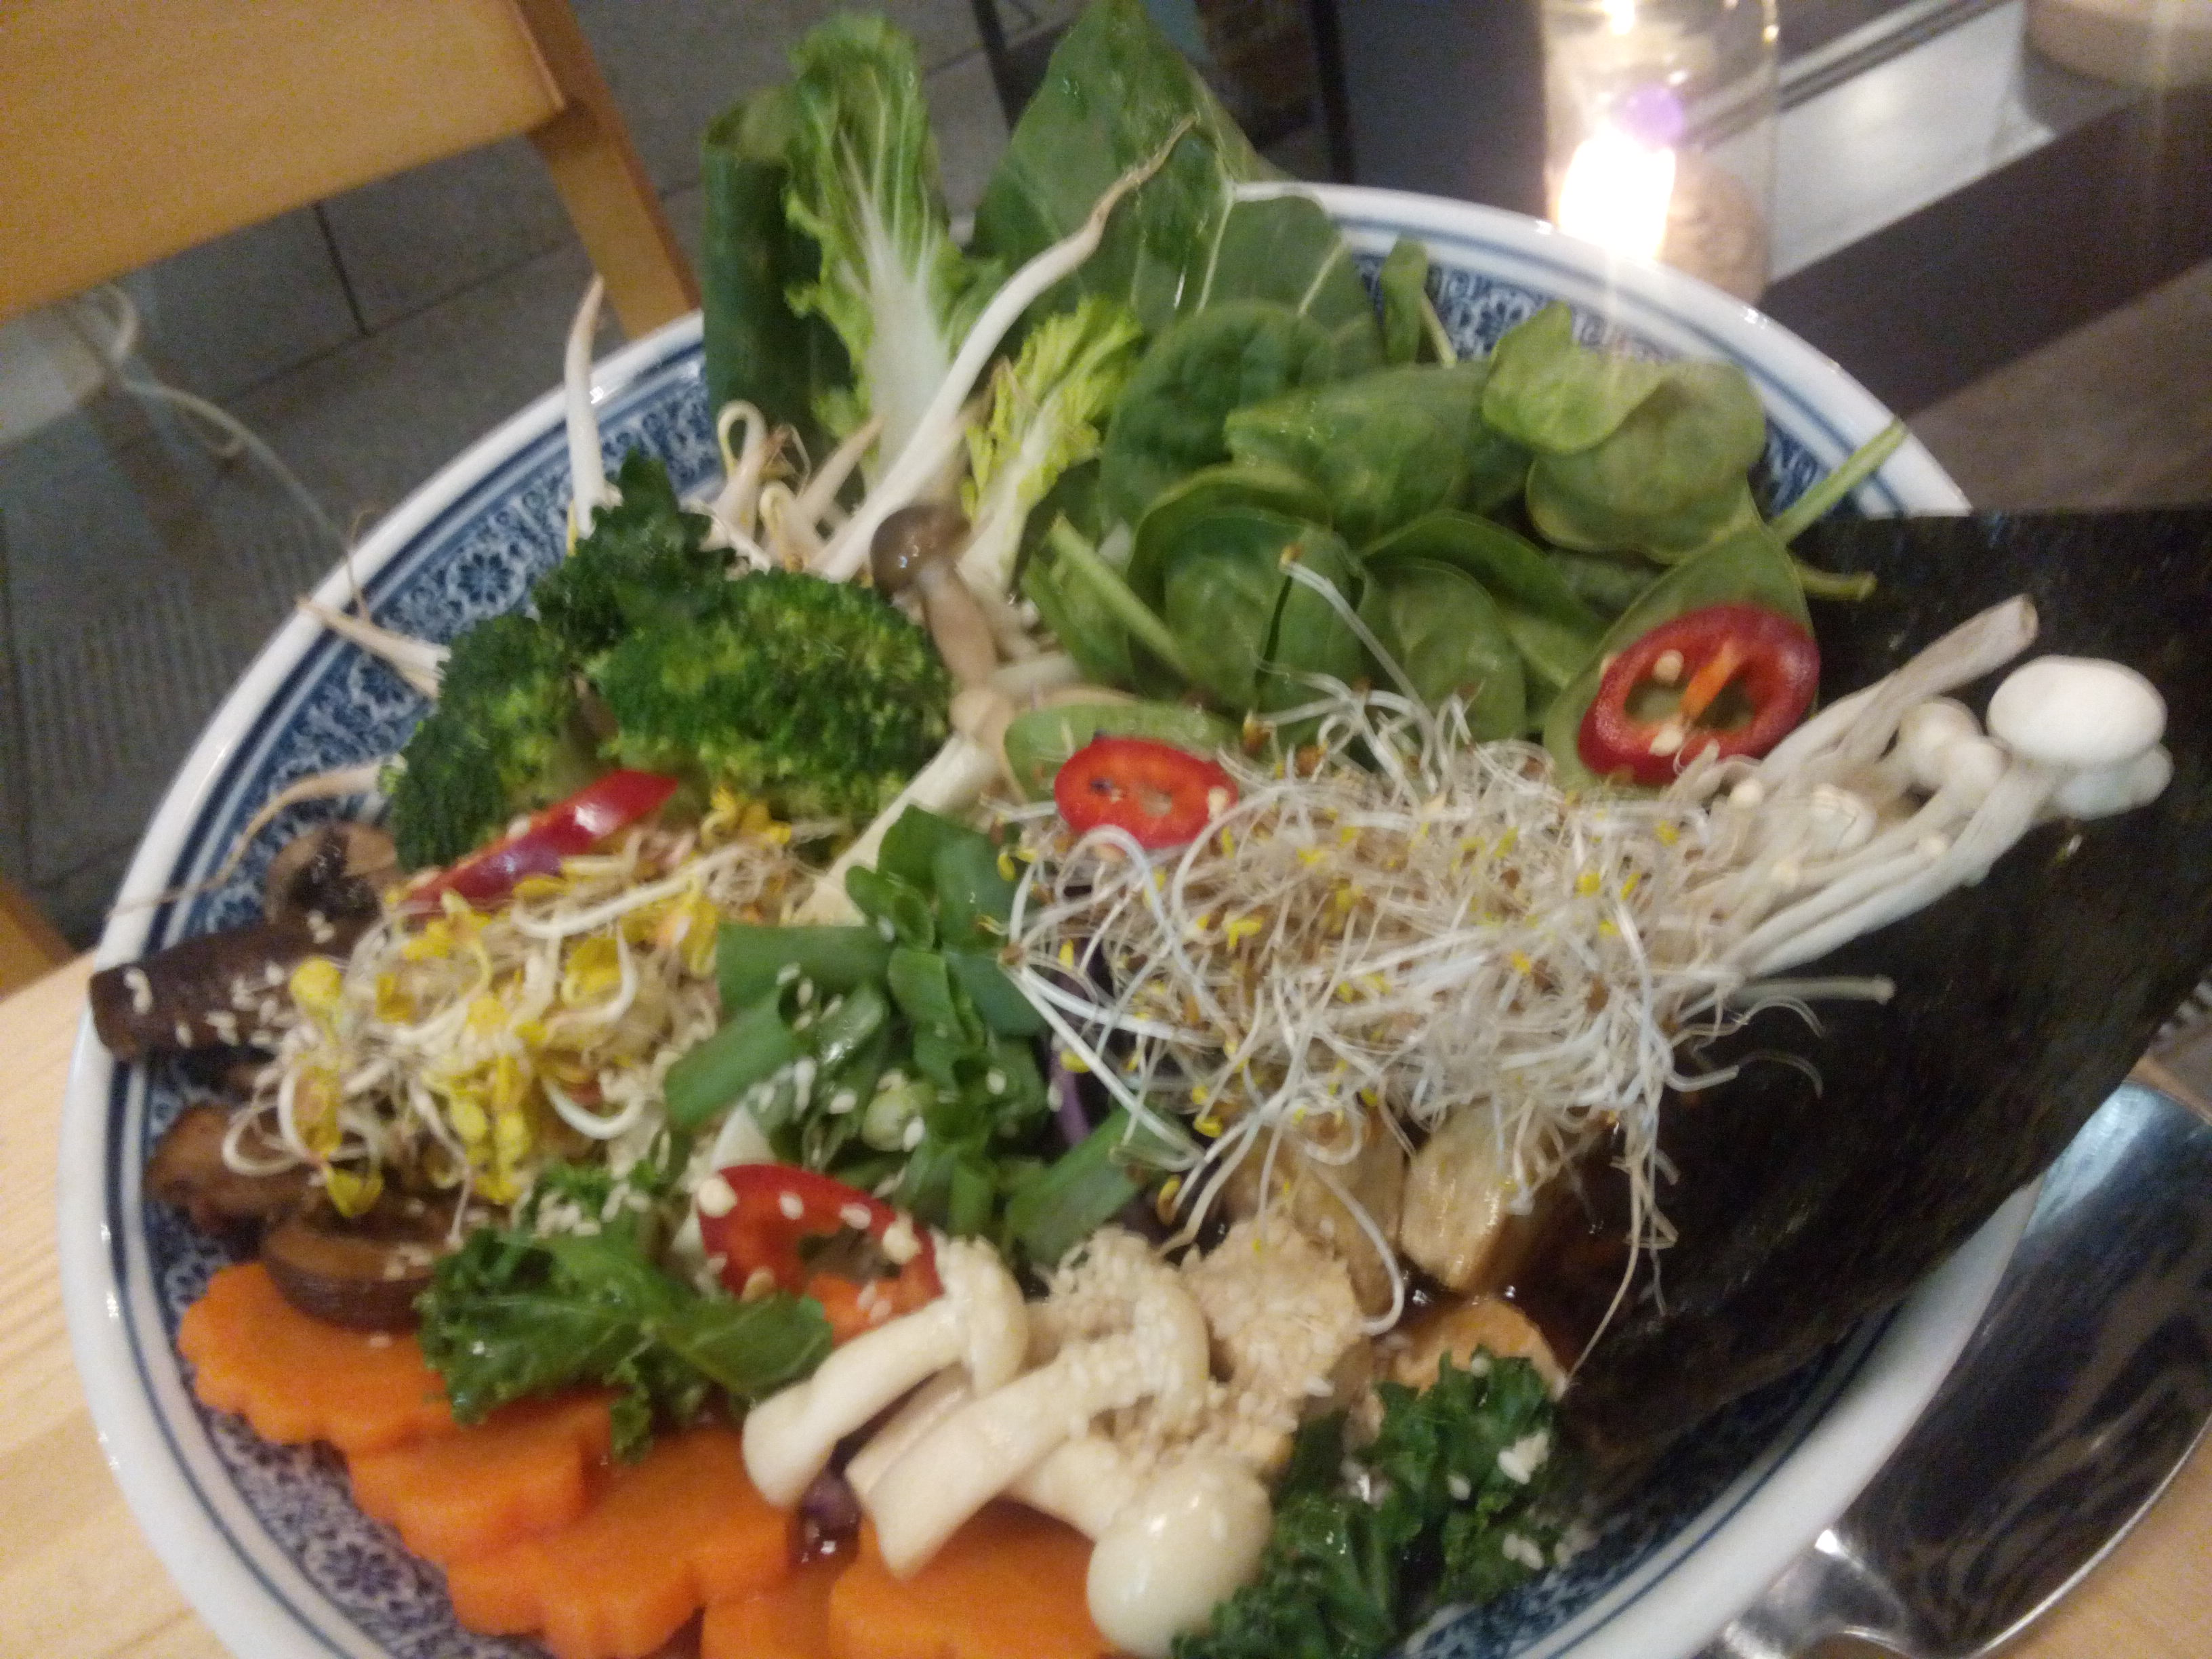 A large bowl exploding with colourful veggies, mushrooms and seaweed